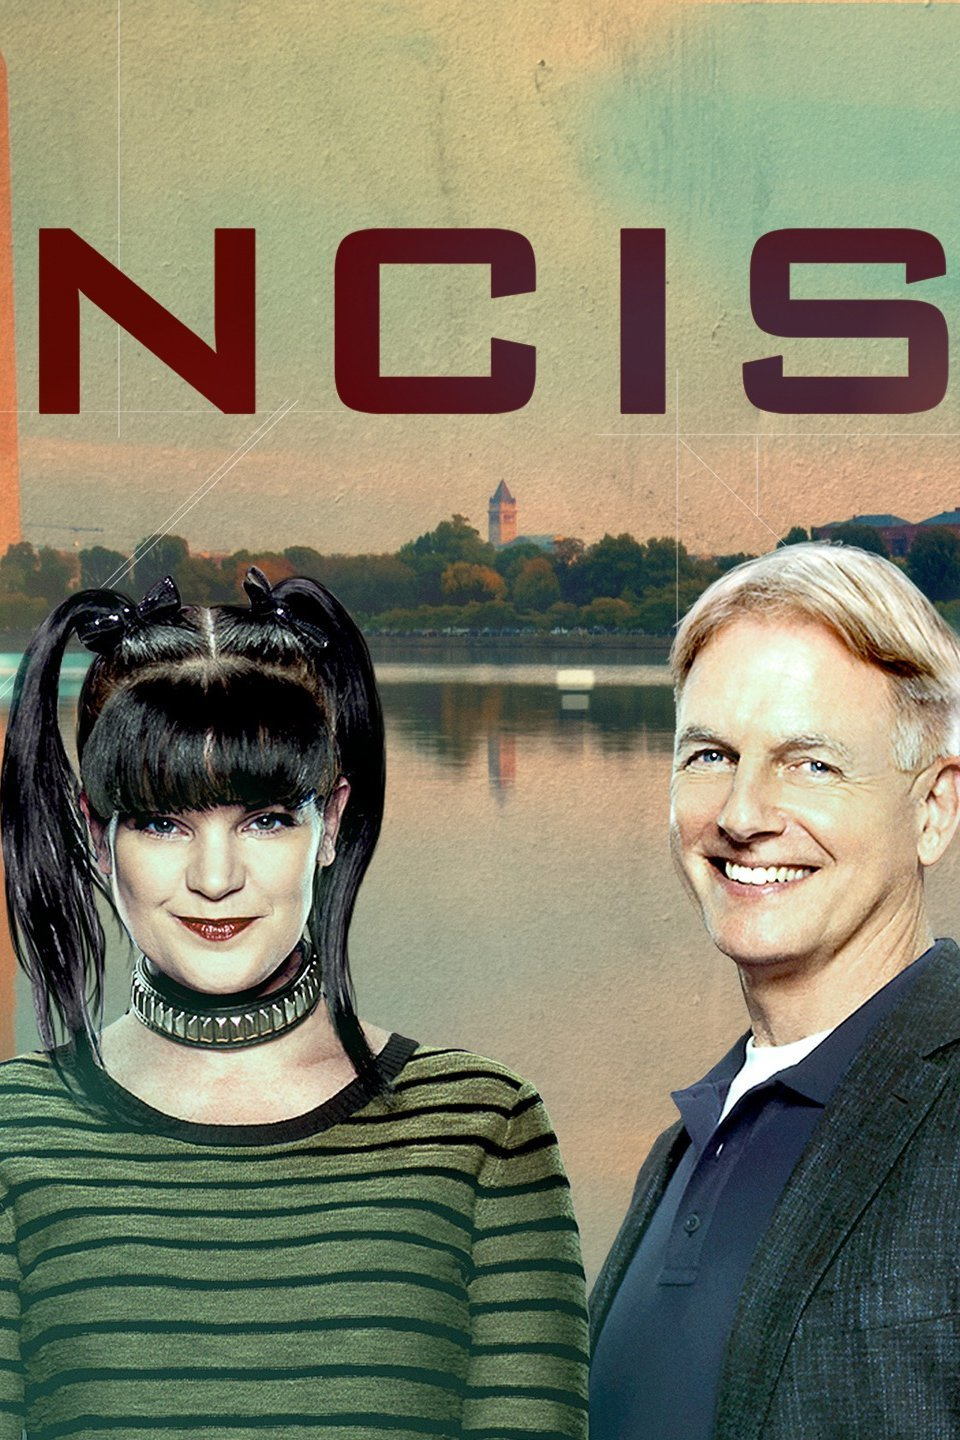 NCIS Season 14 Episode 19 480p WEB-DL 150MB